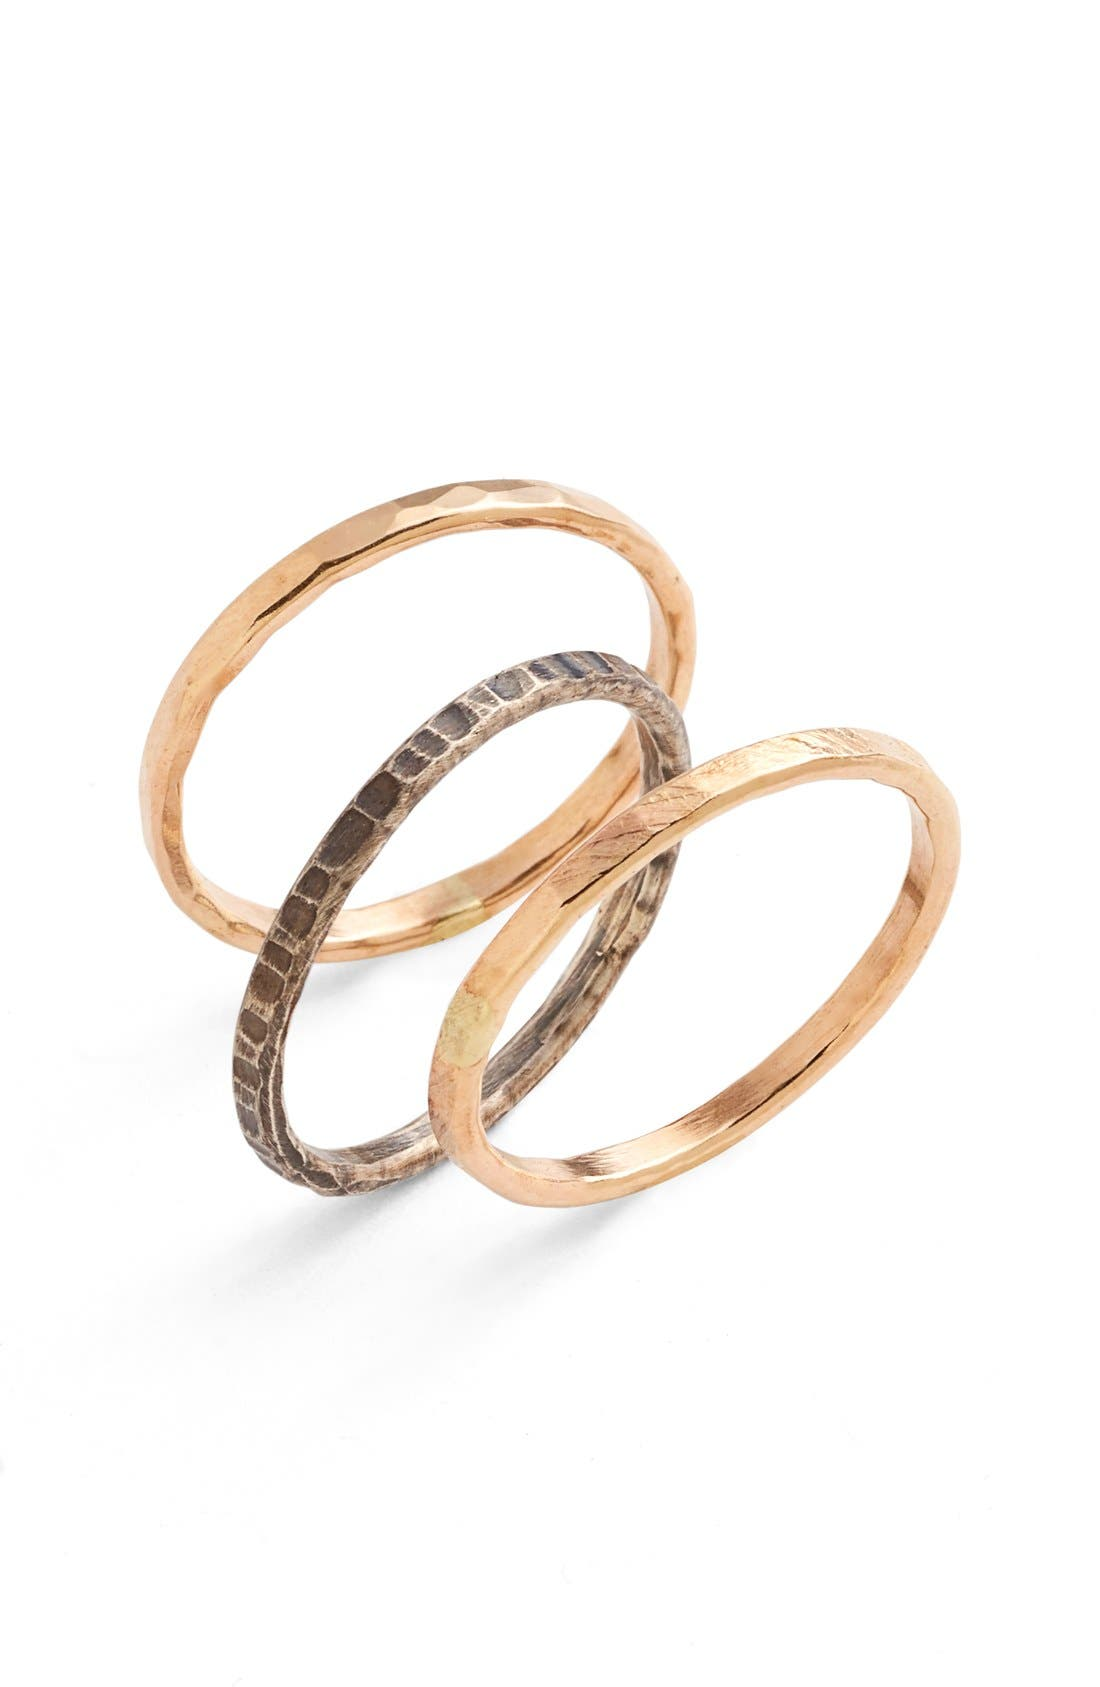 Nashelle Ija Stackable Hammered Rings (Set of 3)